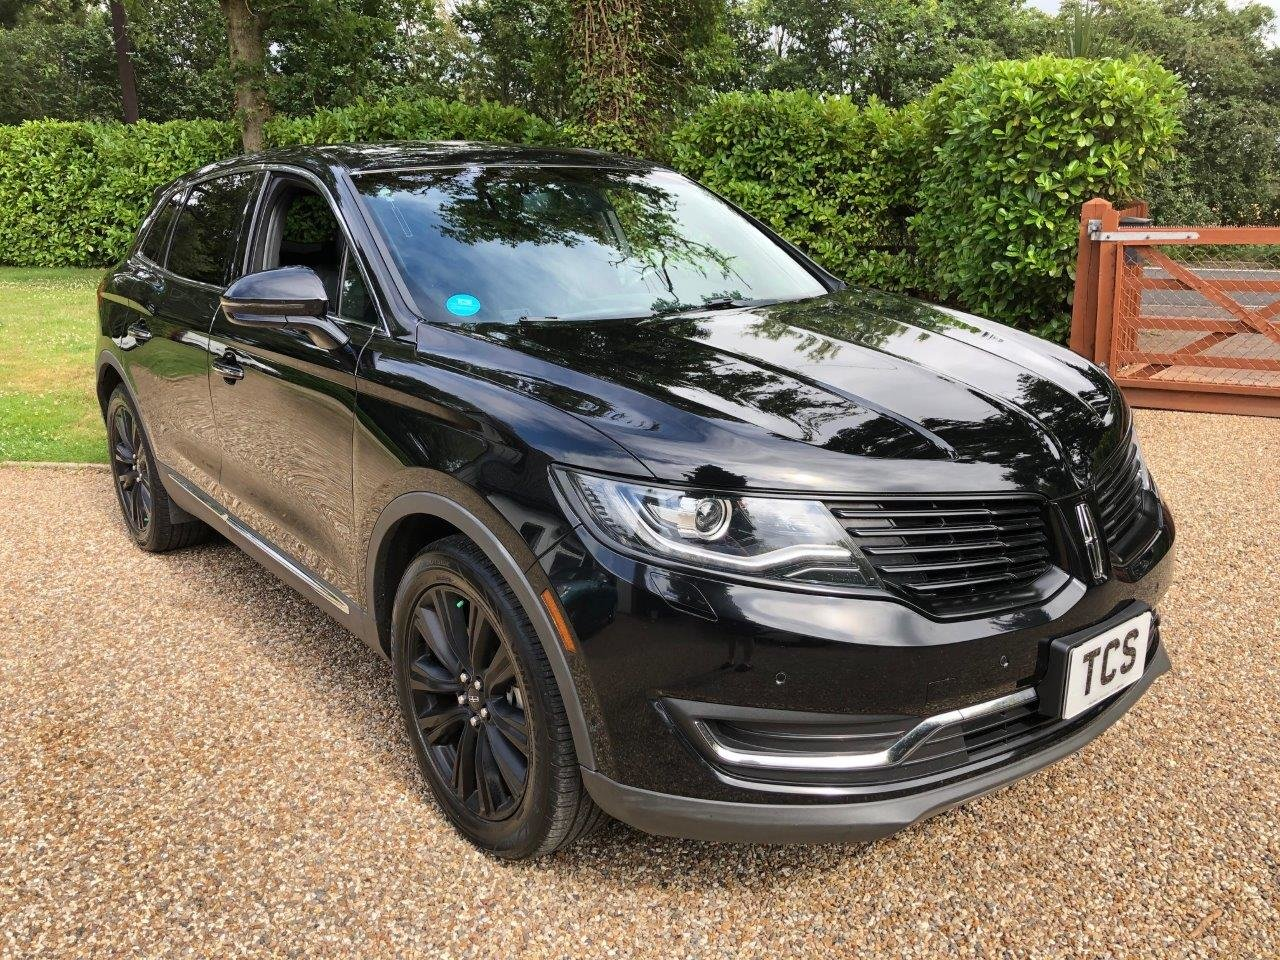 2019 19-plate Lincoln MKX 2.7i V6 EcoBoost AWD Automatic Resreve For Sale (picture 1 of 6)